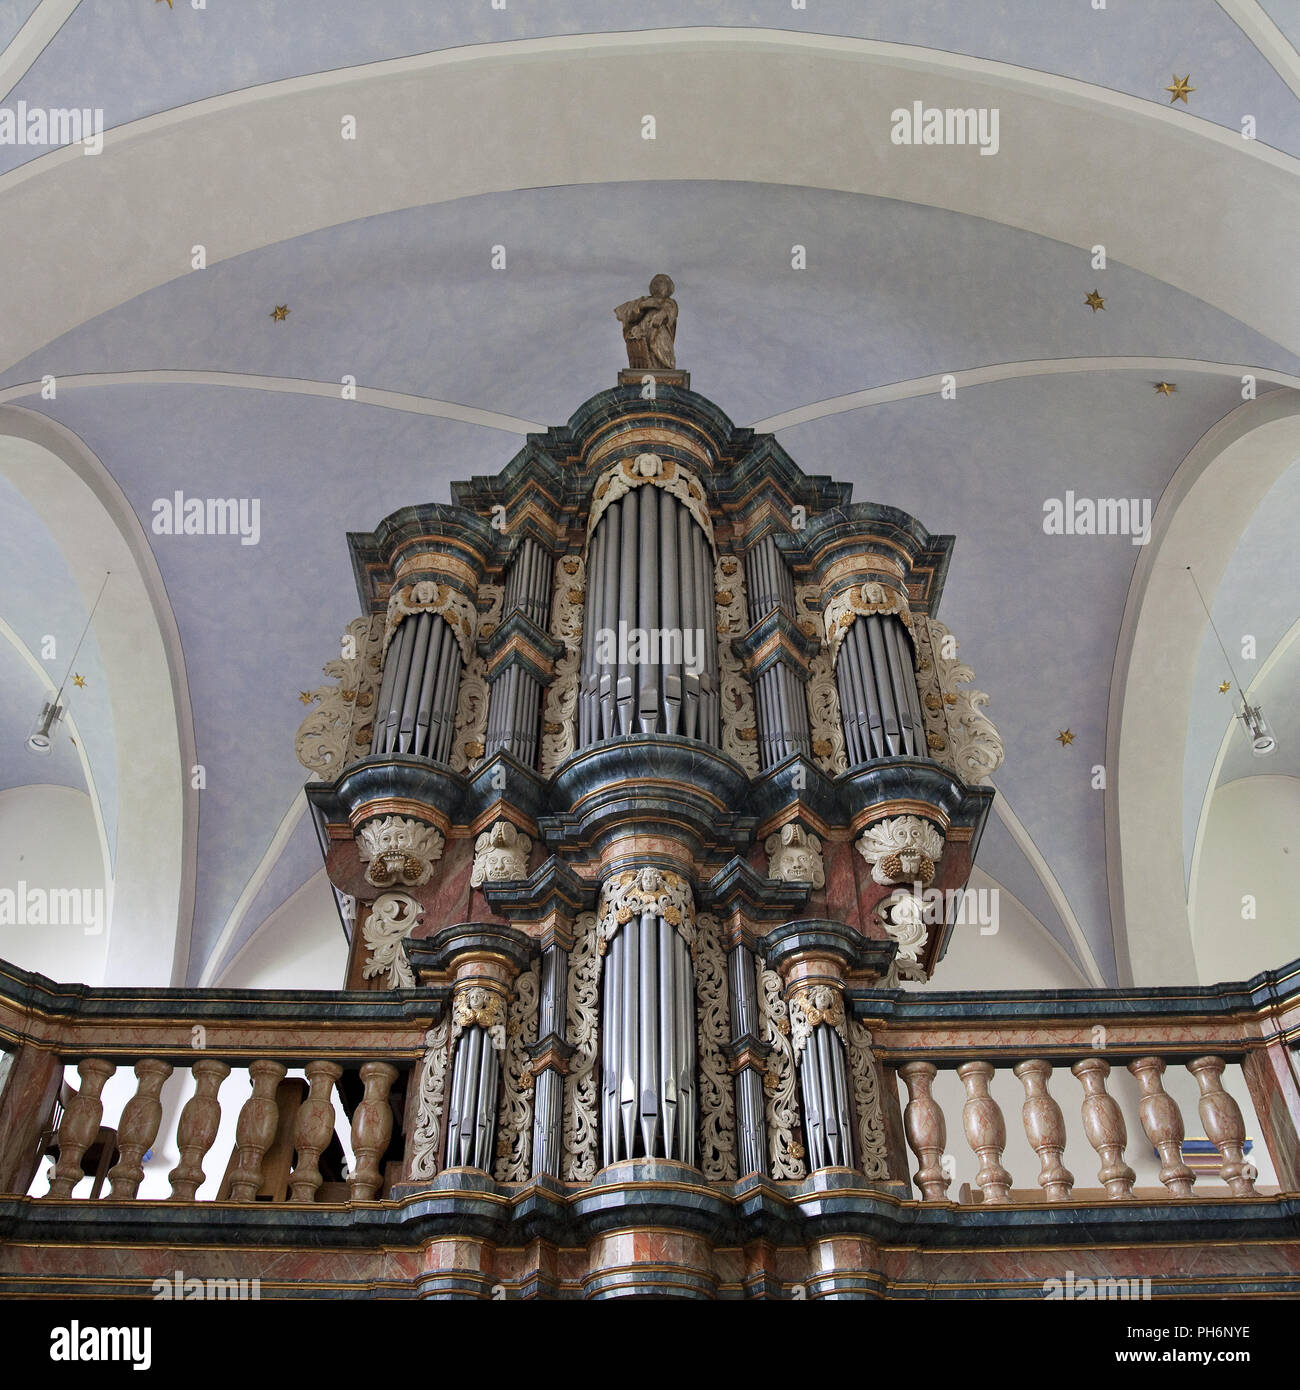 Organ, St. Pankratuis Church, Moehnesee, Germany - Stock Image